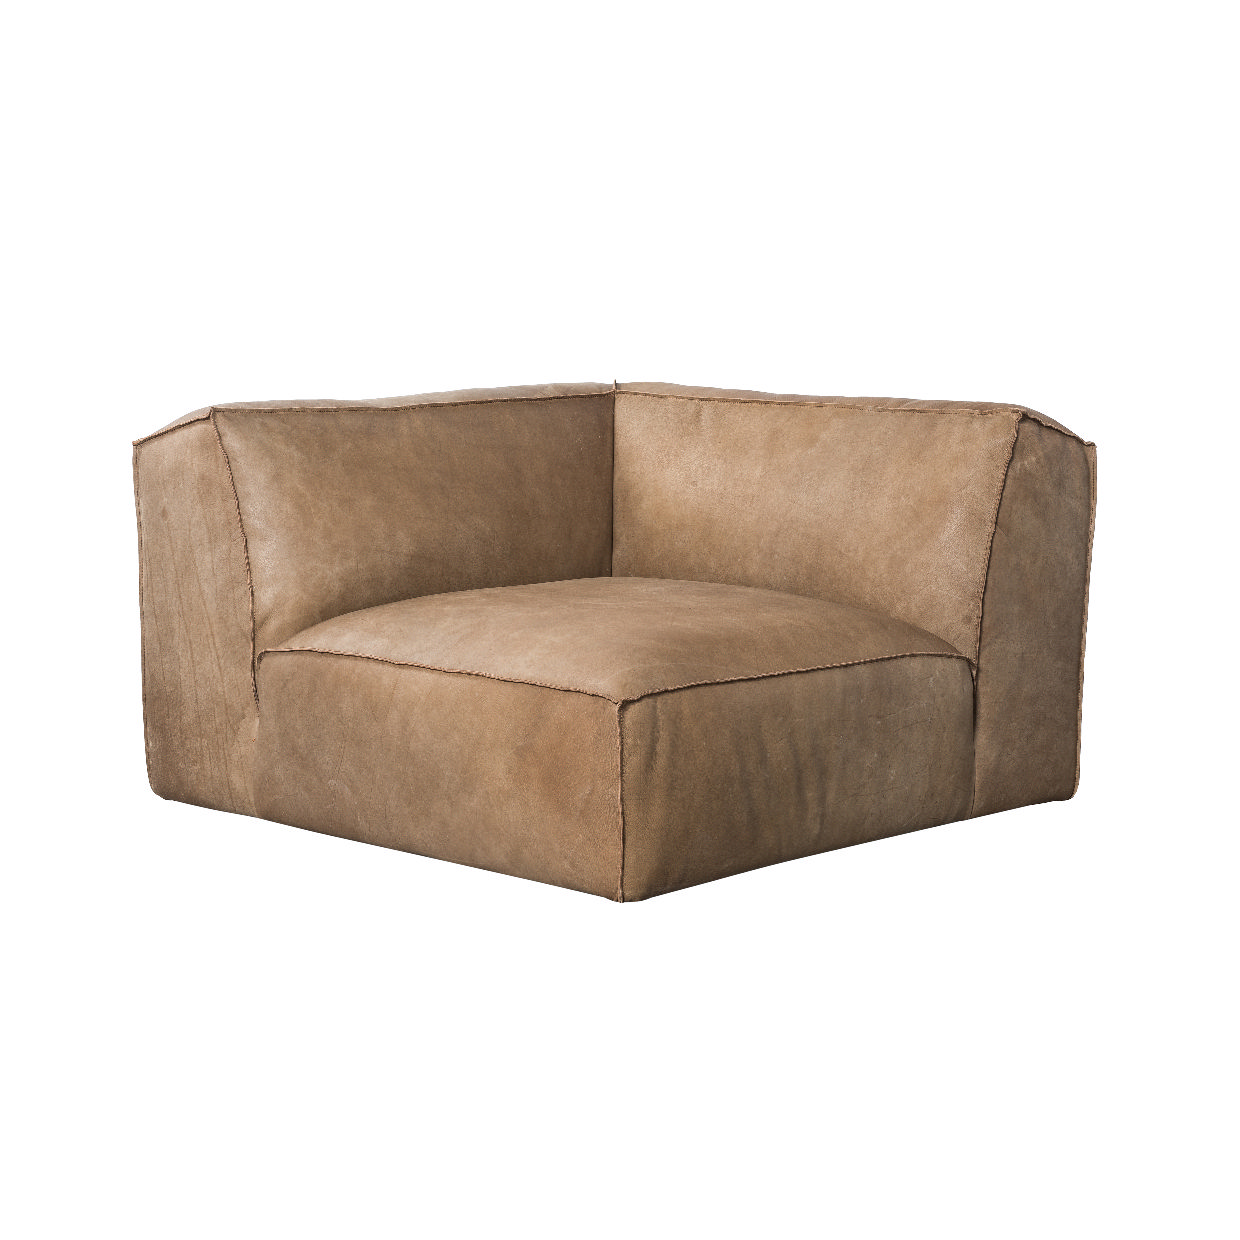 right angled sectional sofa 5 inch dark walnut plastic tapered legs timothy oulton nirvana corner - large